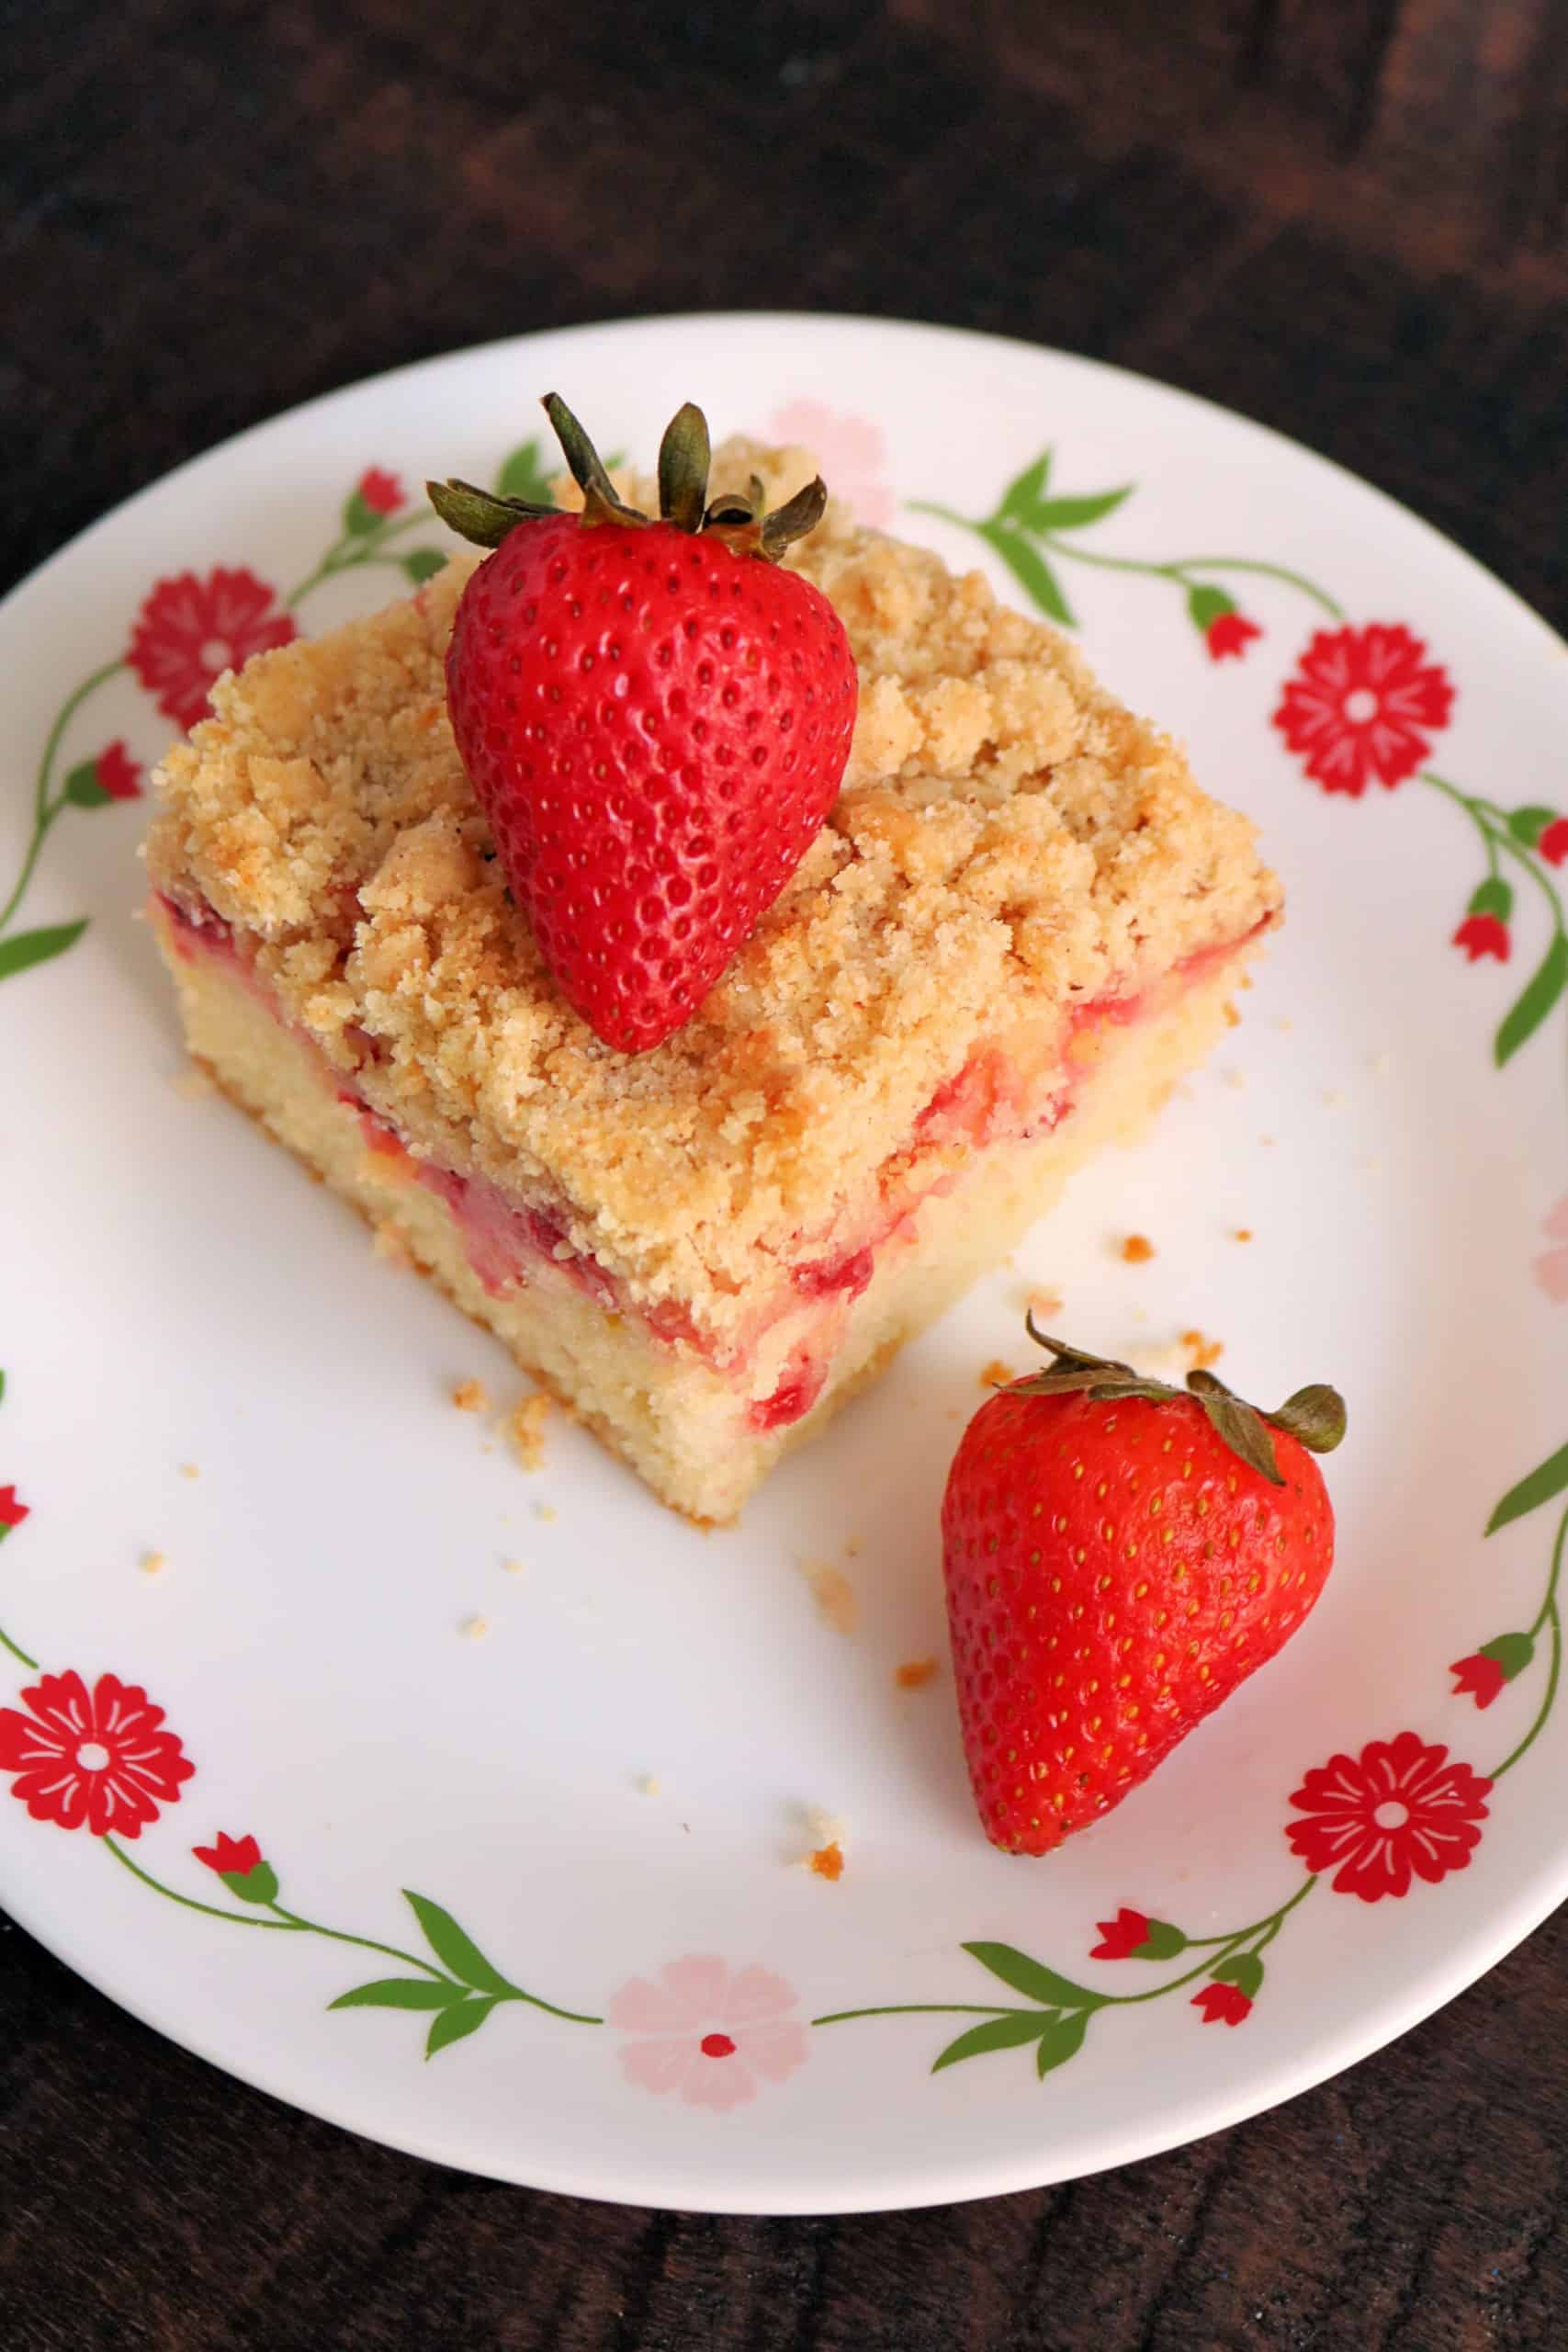 This Fresh Strawberry Coffee Cake with Crumb Topping is so delicious and easy to make! Homemade, soft vanilla butter cake with sour cream, fresh strawberries, and a brown sugar cinnamon crumb topping make one perfect breakfast treat or dessert! #strawberrycake #coffeecake #breakfast #dessert #easyrecipe